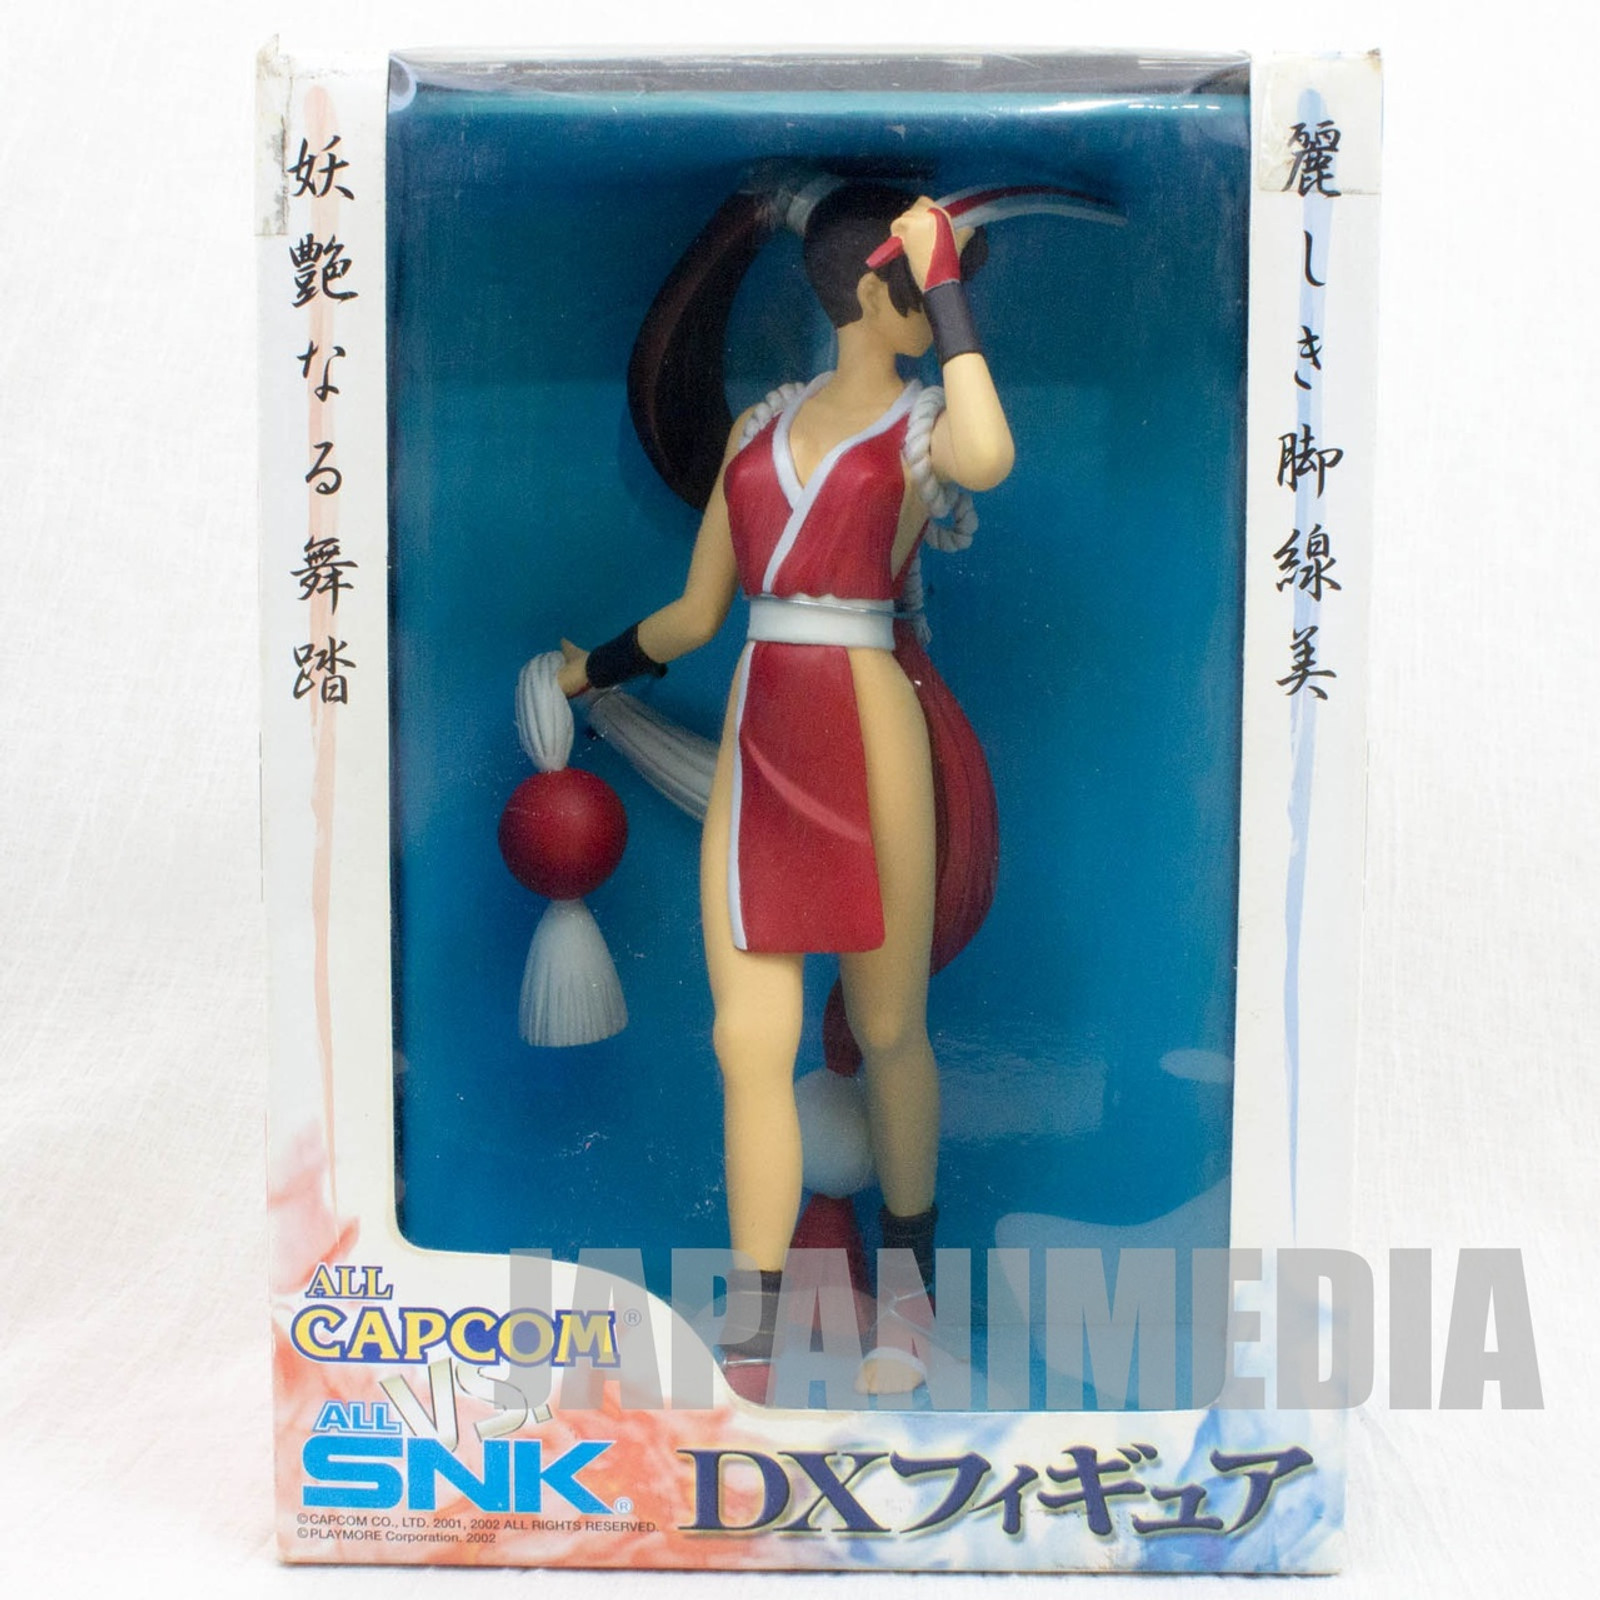 King of Fighters Mai Shiranui DX Figure Banpresto Capcom SNK JAPAN